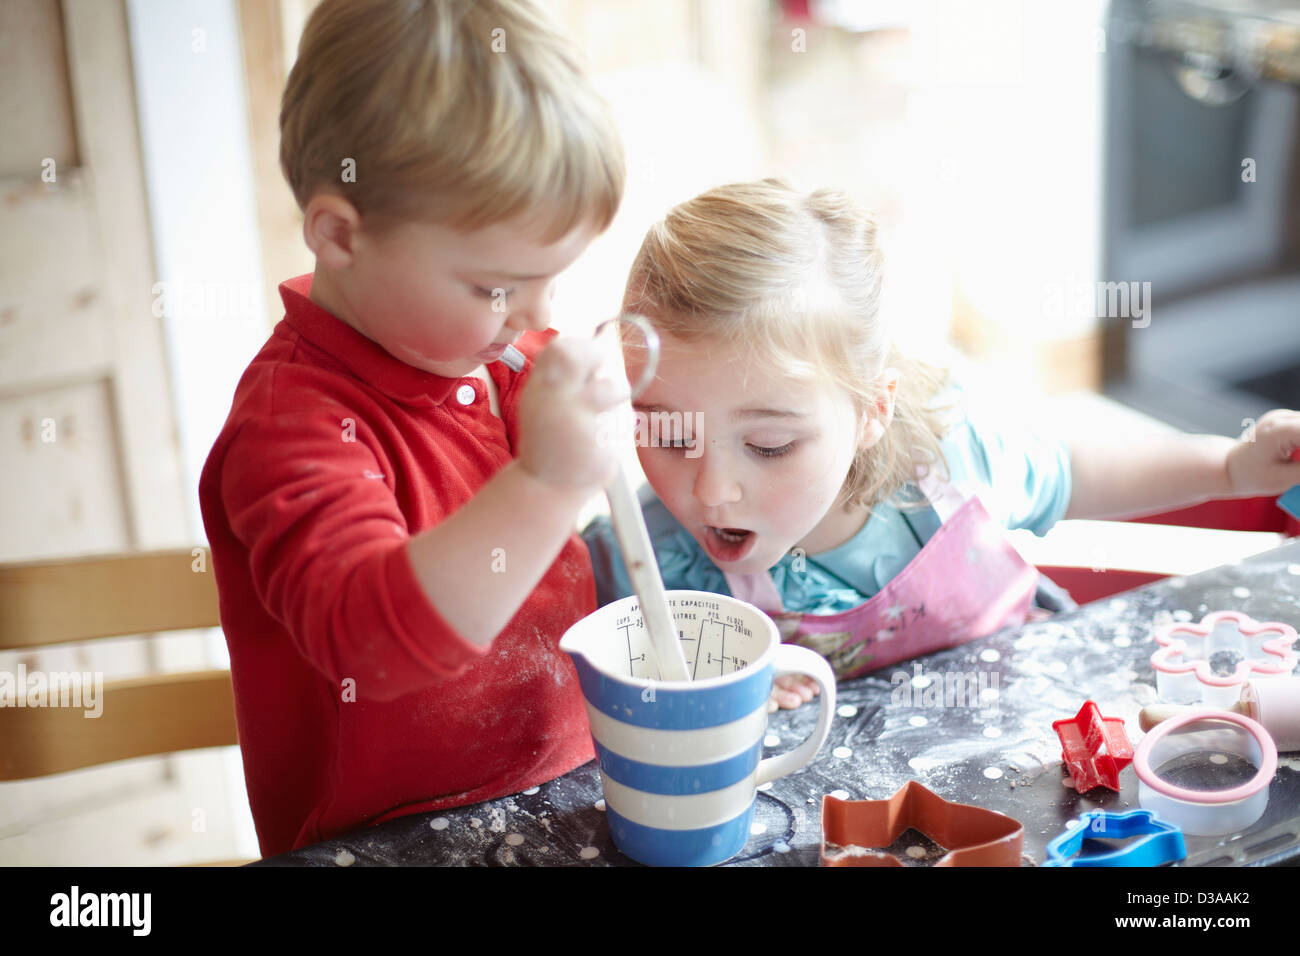 Children cooking together in kitchen - Stock Image